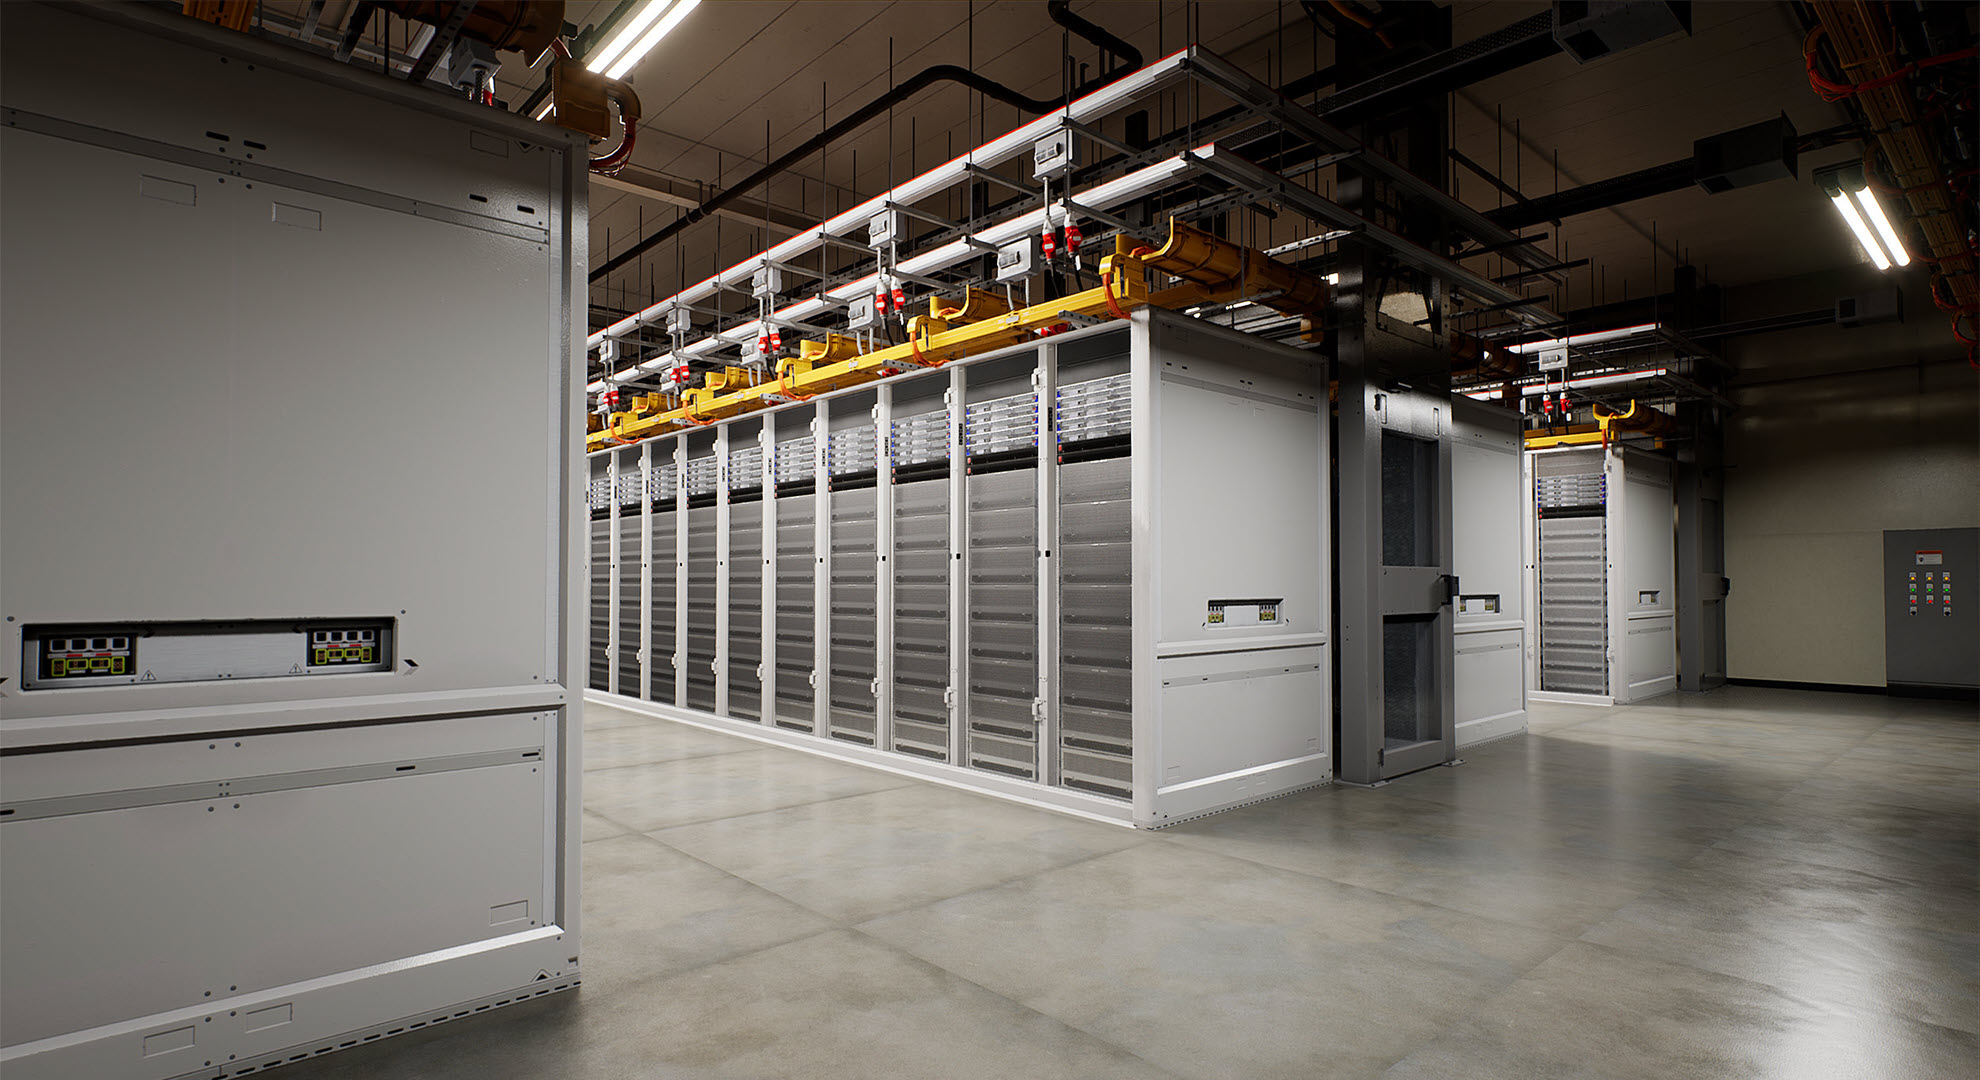 Image showing the hot aisle and cold aisle configuration of servers inside a typical Microsoft datacenter.